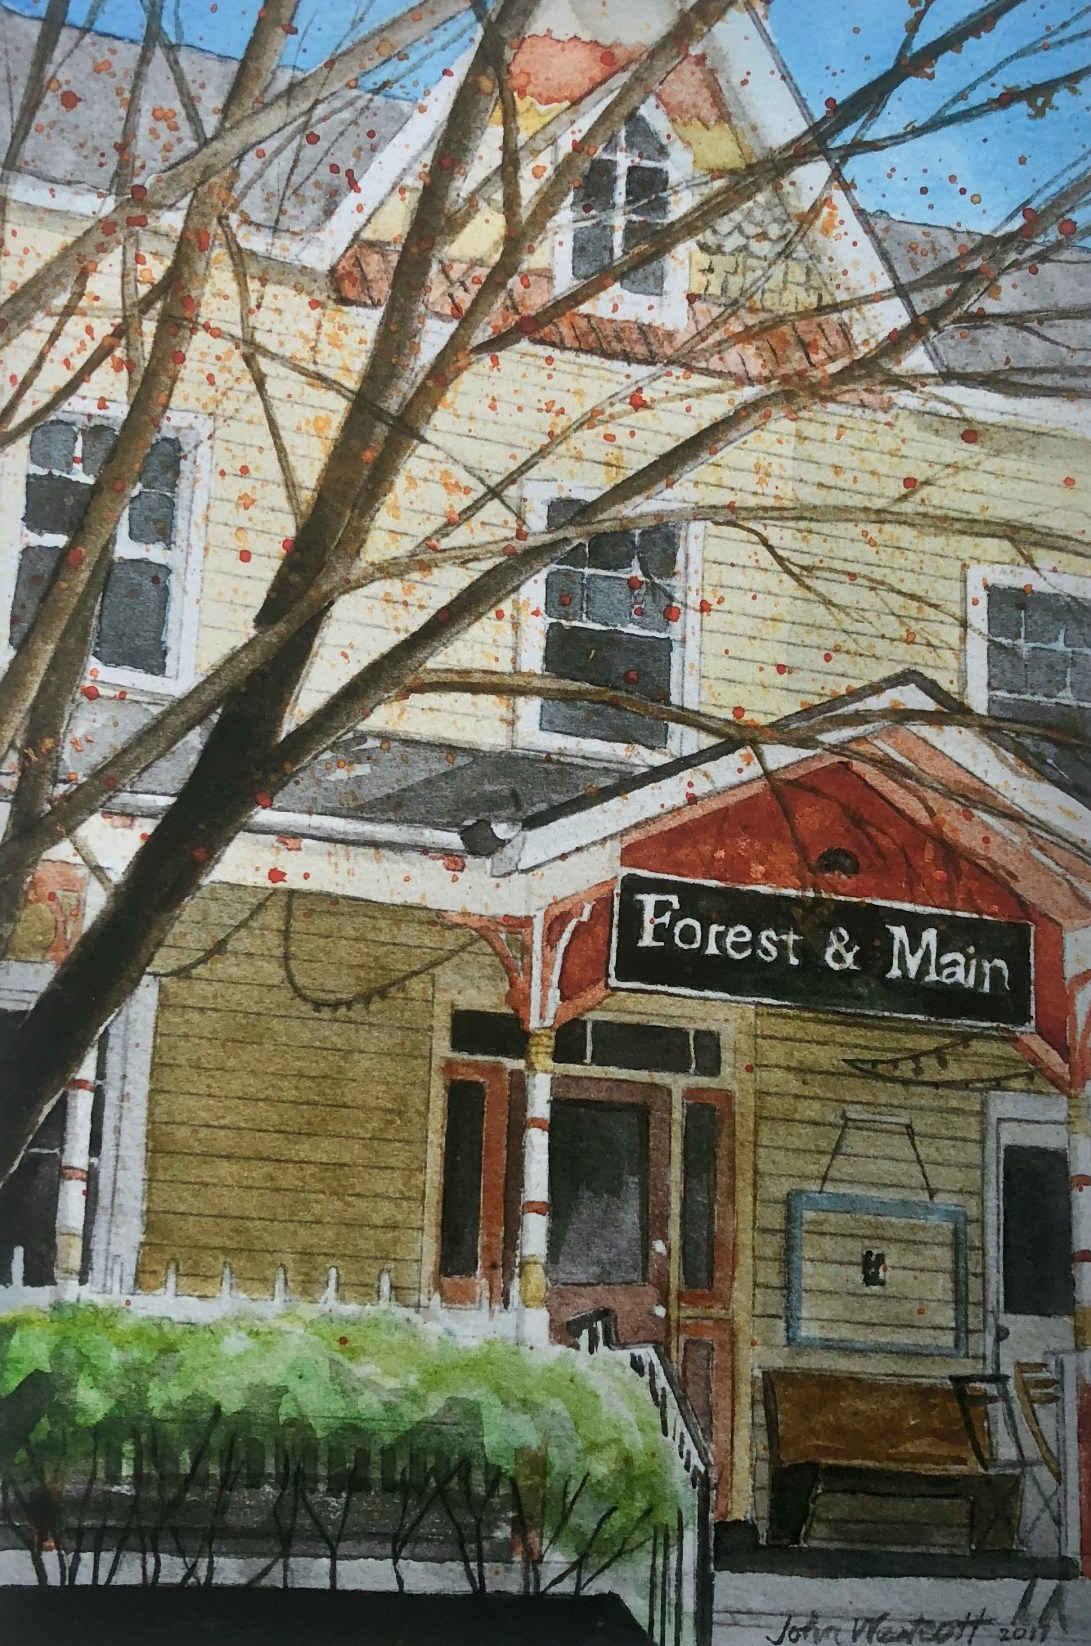 Forest & Main